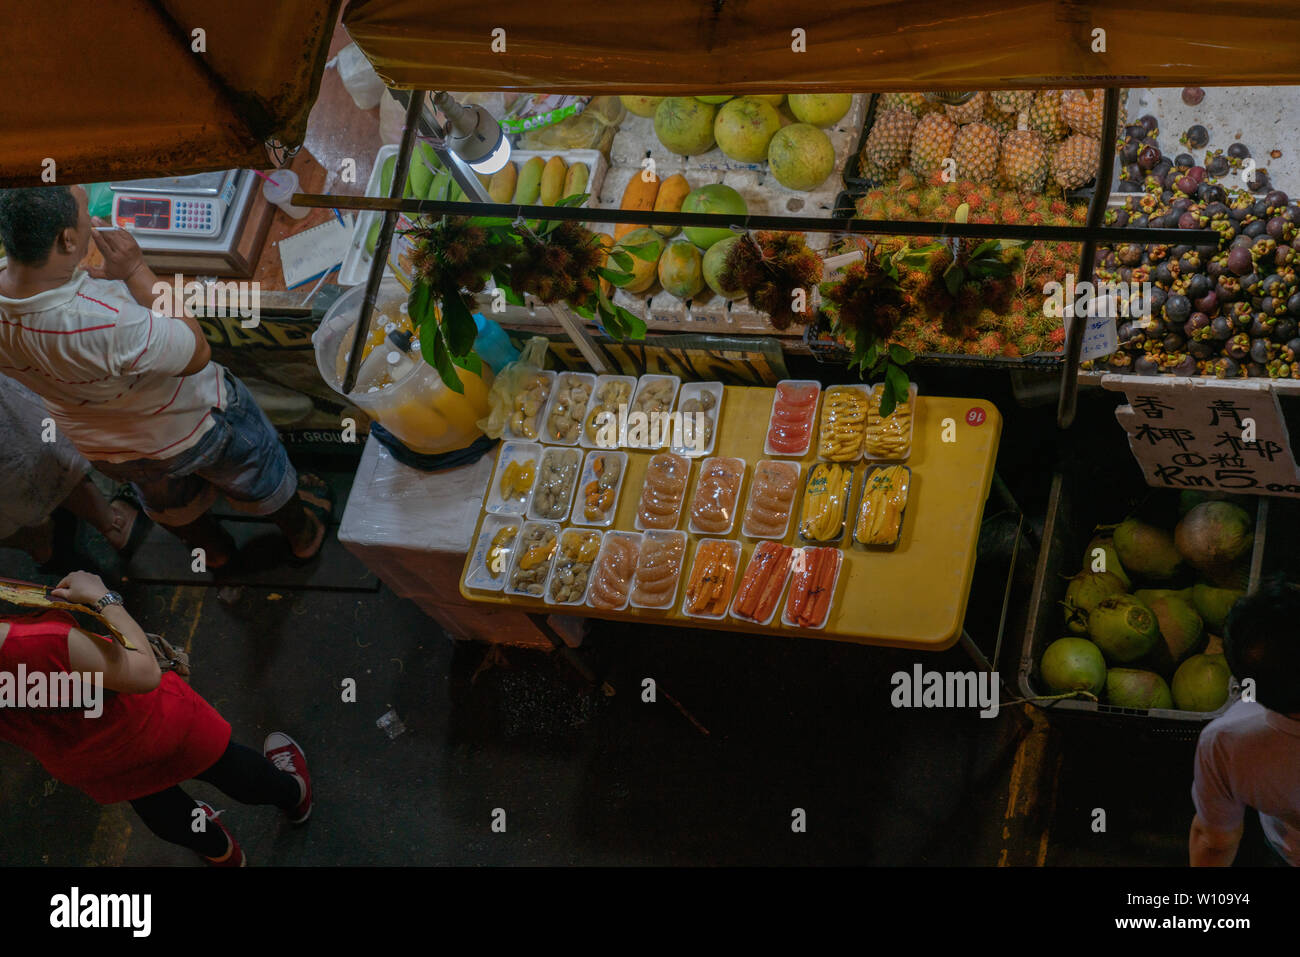 KOTA KINABULU, BORNEO - JUNE 1 2019; Night street market for locals with produce laid out on table wraaped in plastic - Stock Image